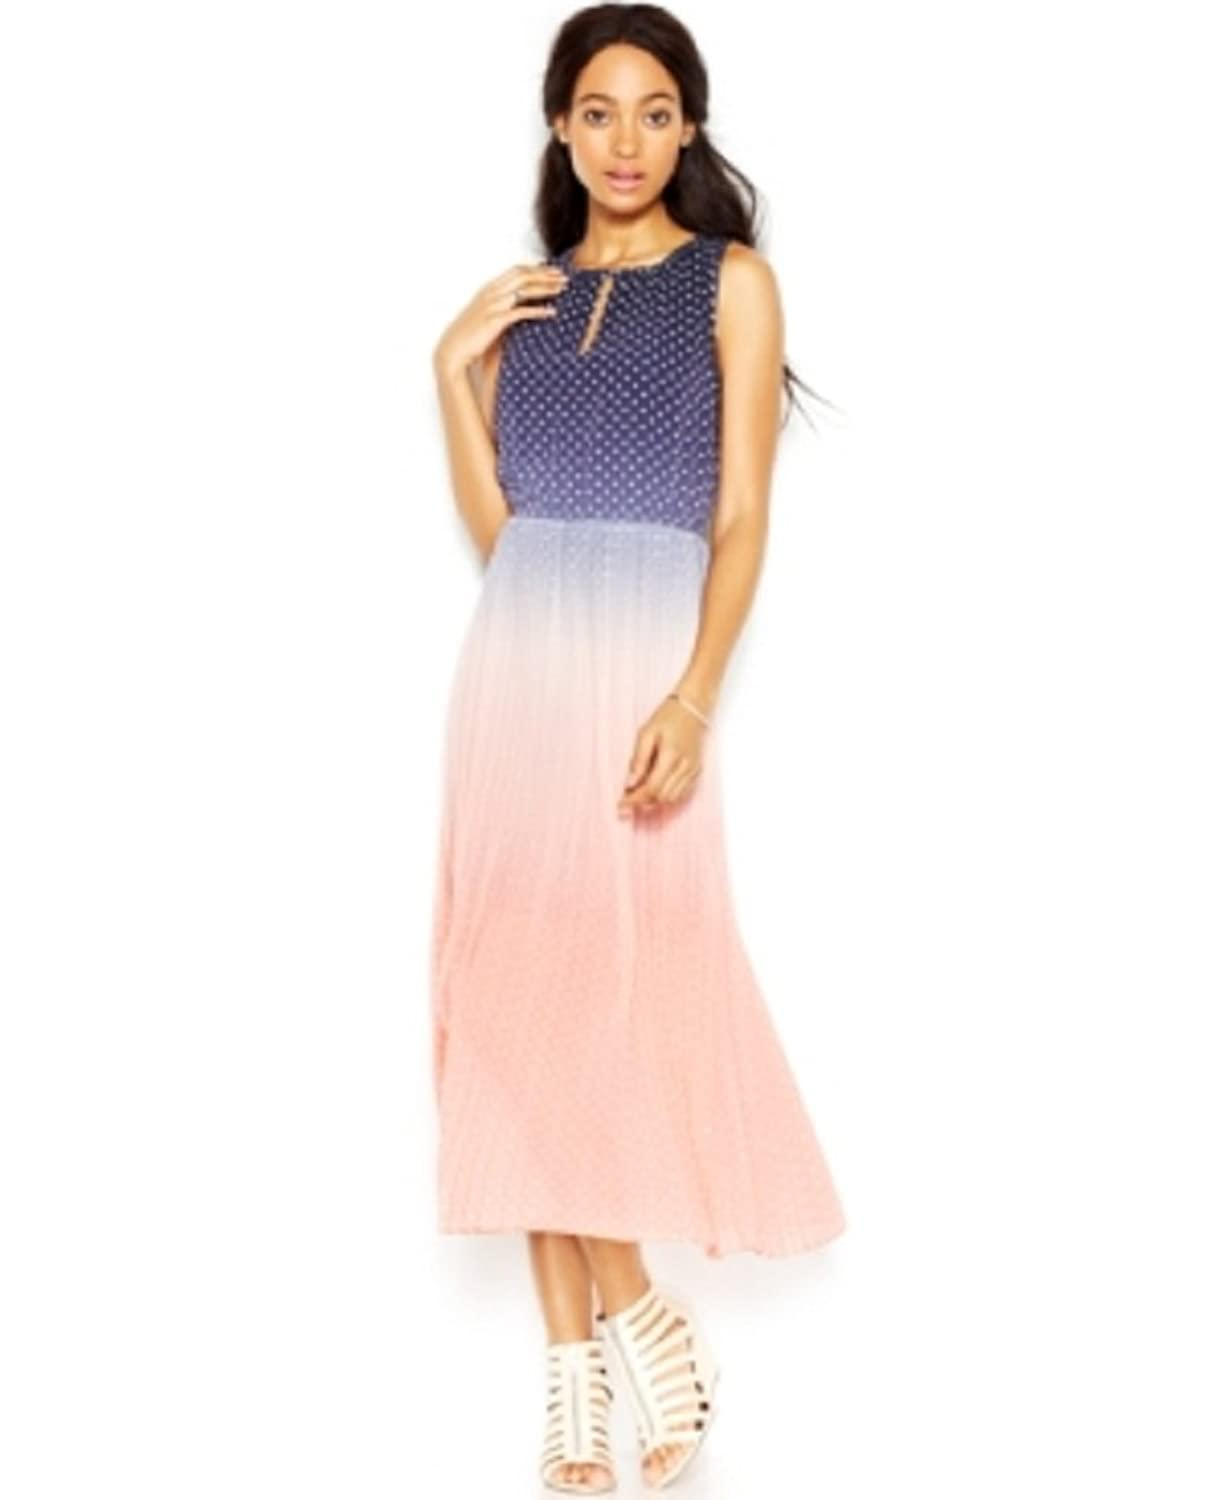 Maison Jules Sleeveless Ombre-Print Midi Dress